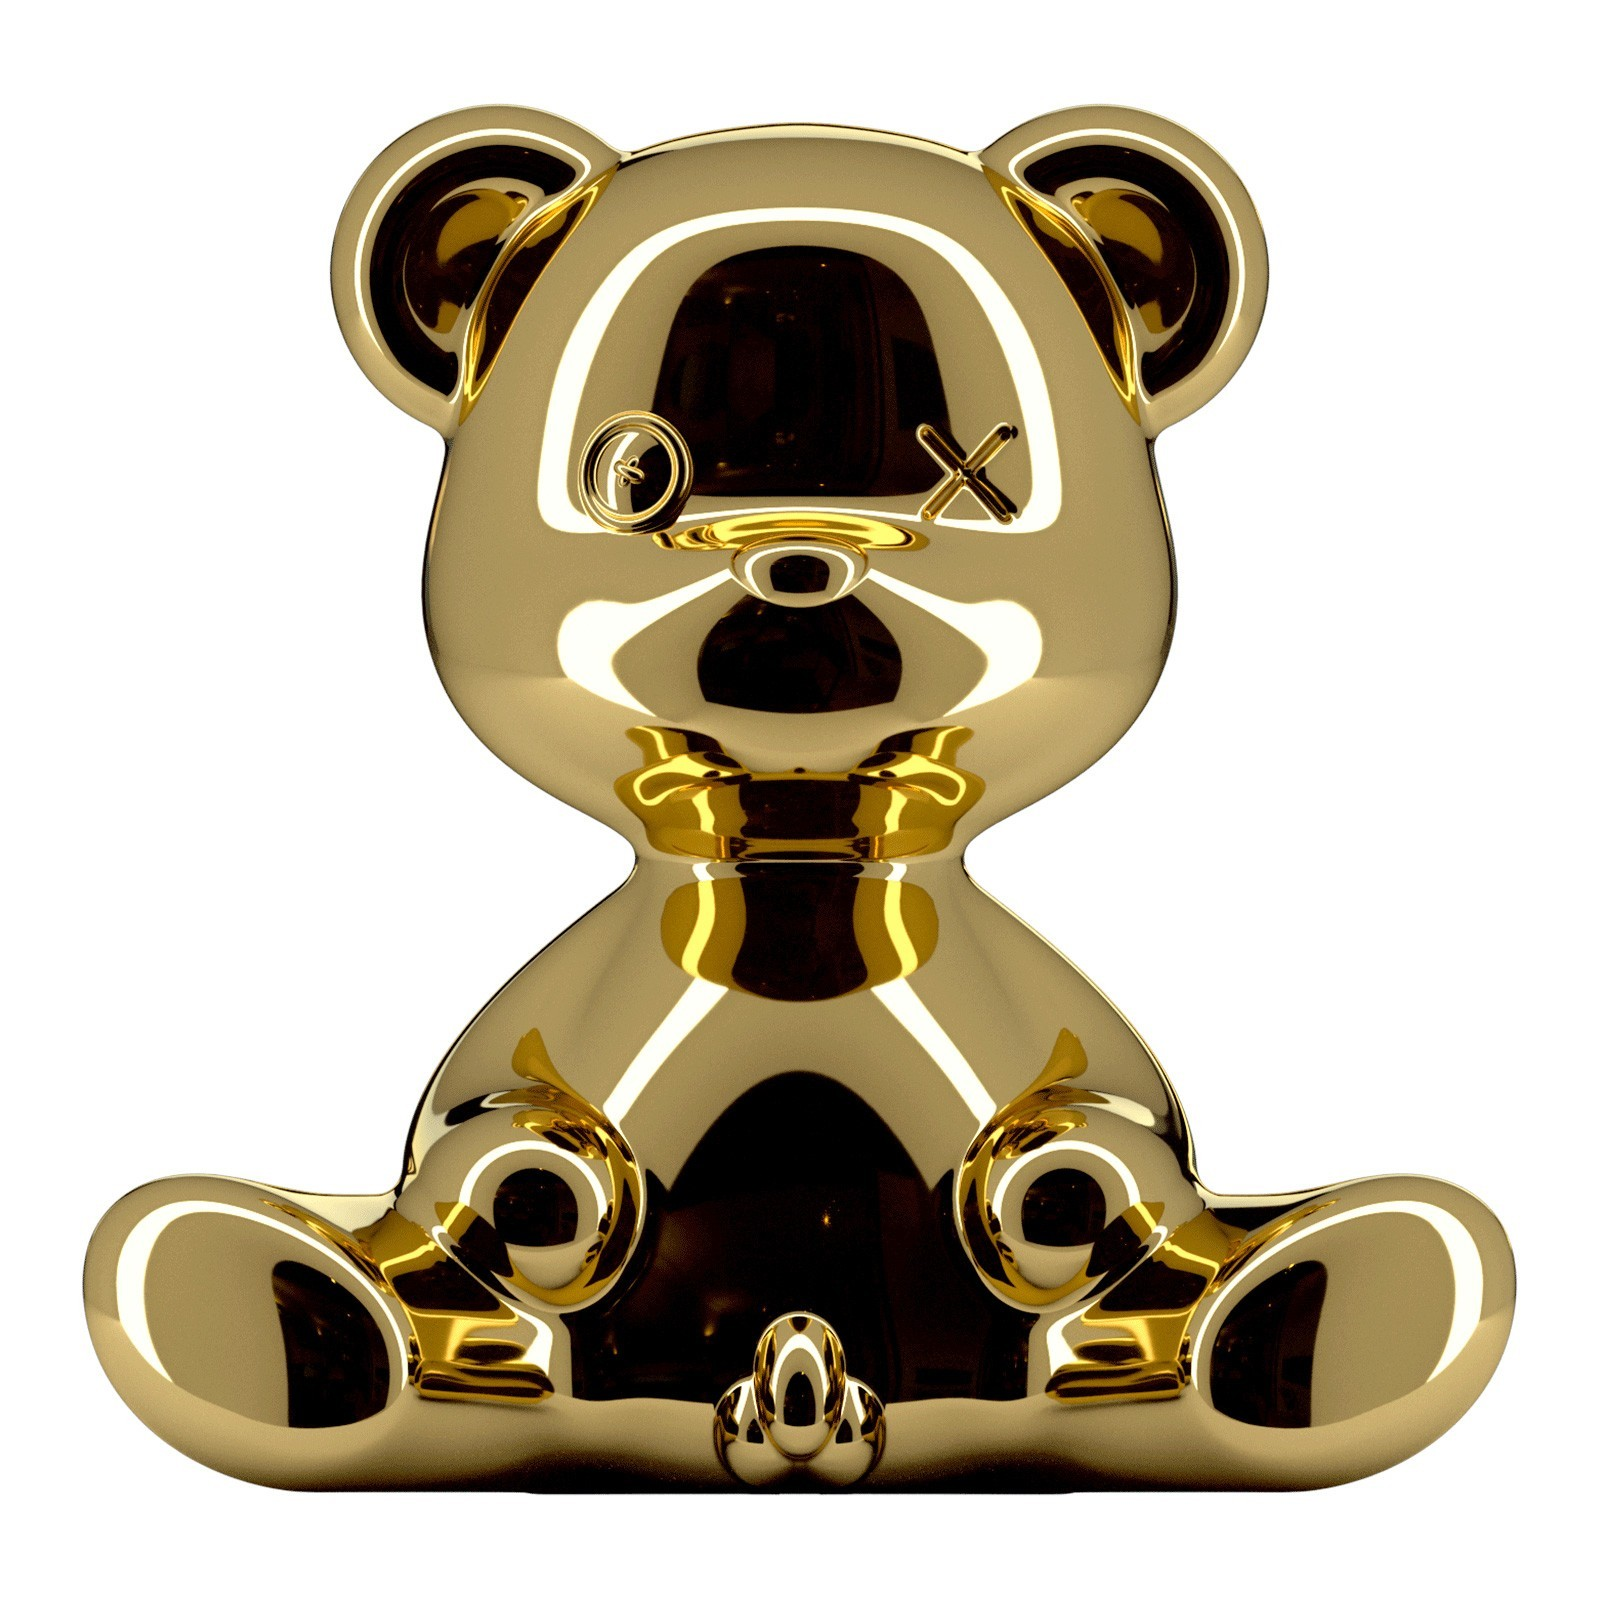 Qeeboo Teddy Boy Table Lamp, Gold